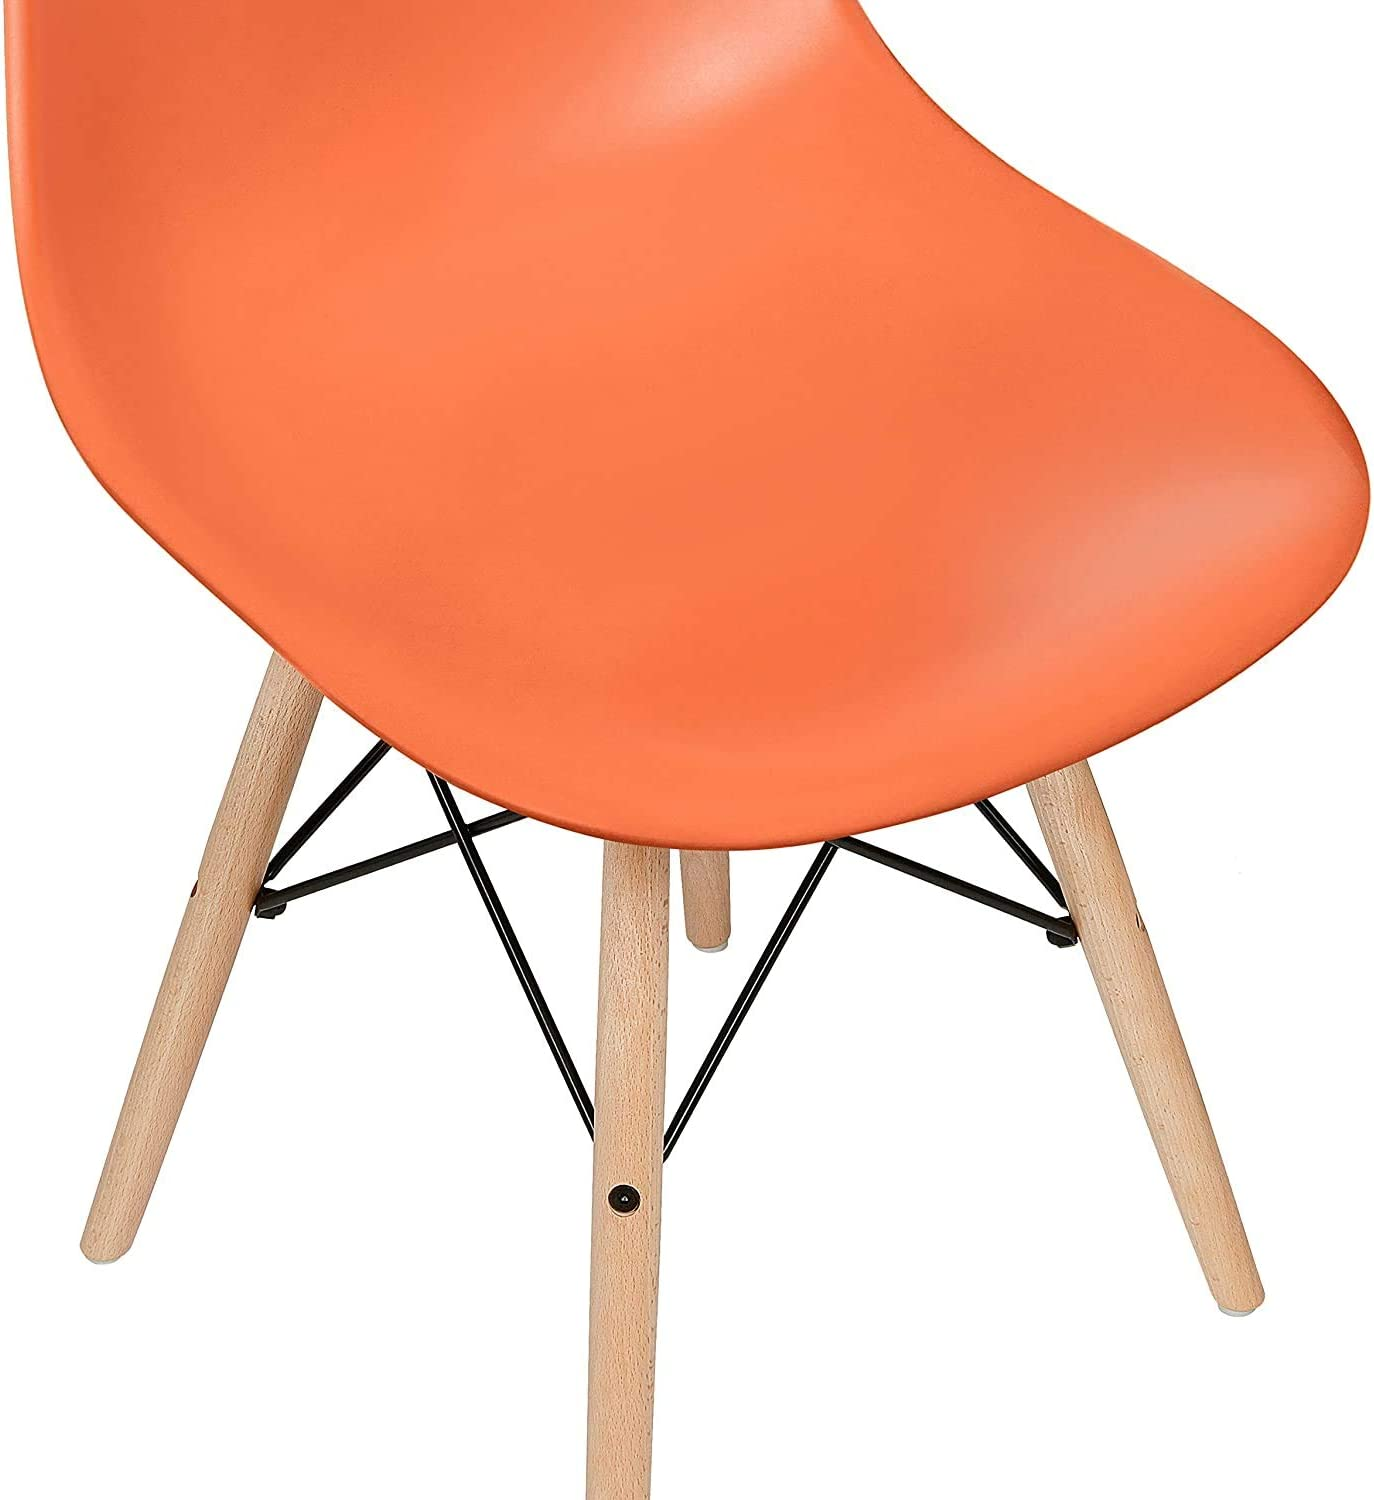 Orange Santru Dining Plastic Chair Retro with Wood Legs for Office Lounge Kitchen Bedroom DS-P